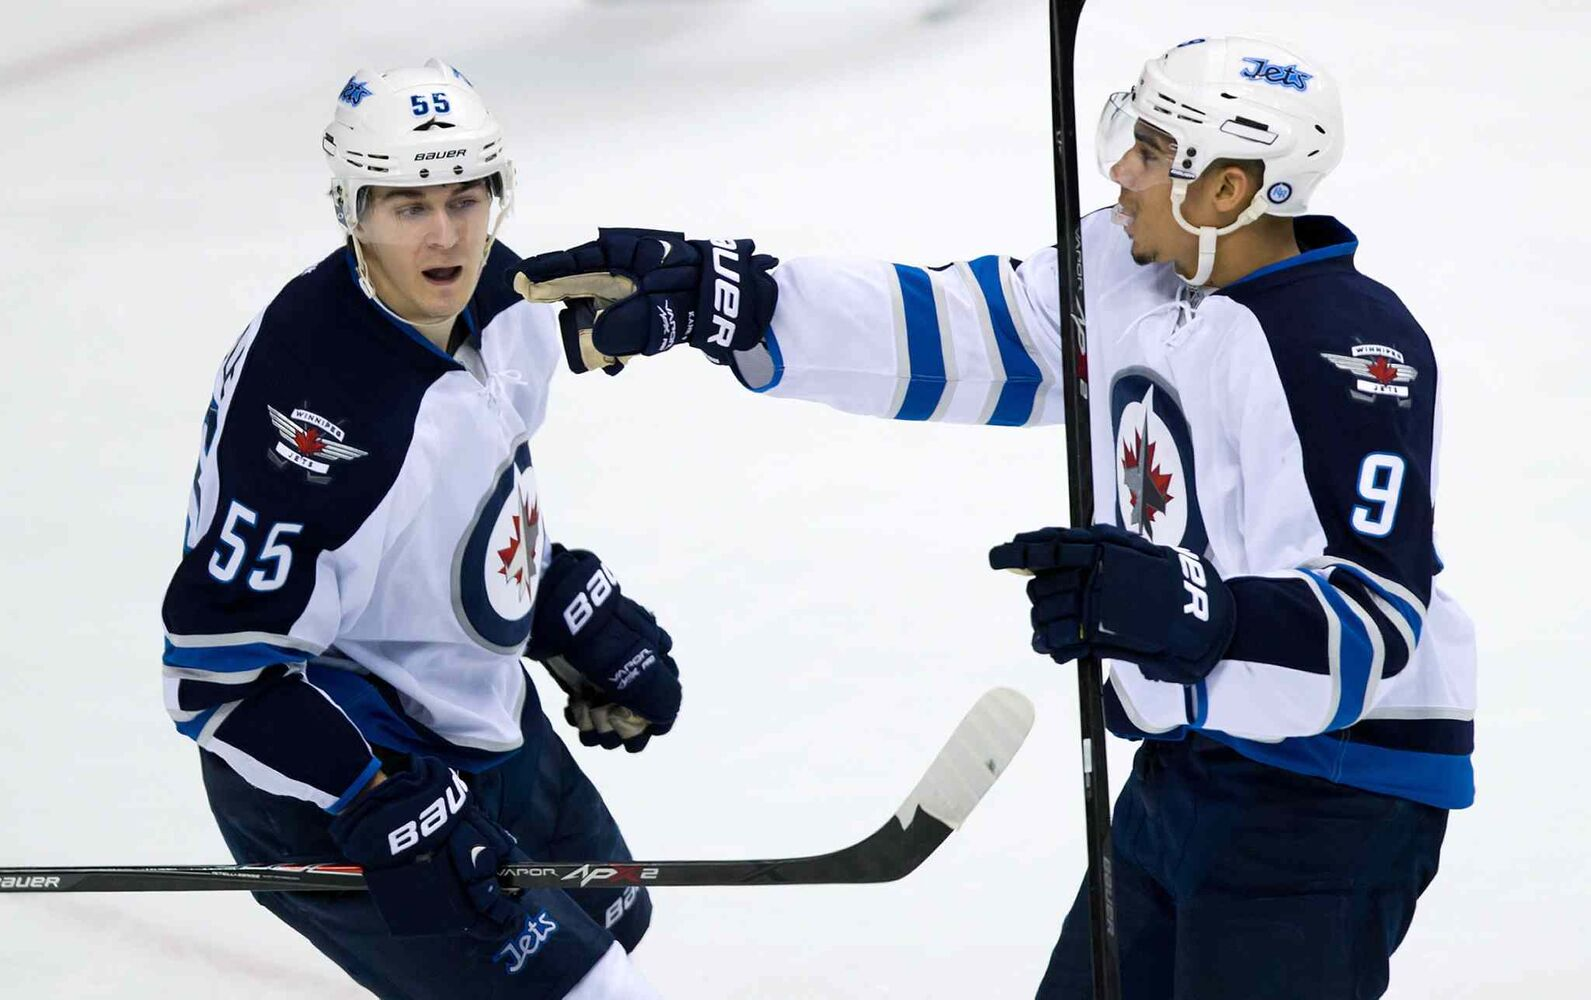 Winnipeg Jets forward Evander Kane (right) and Mark Scheifele celebrate Kane's goal against the Vancouver Canucks during the second period. (DARRYL DYCK / THE CANADIAN PRESS)